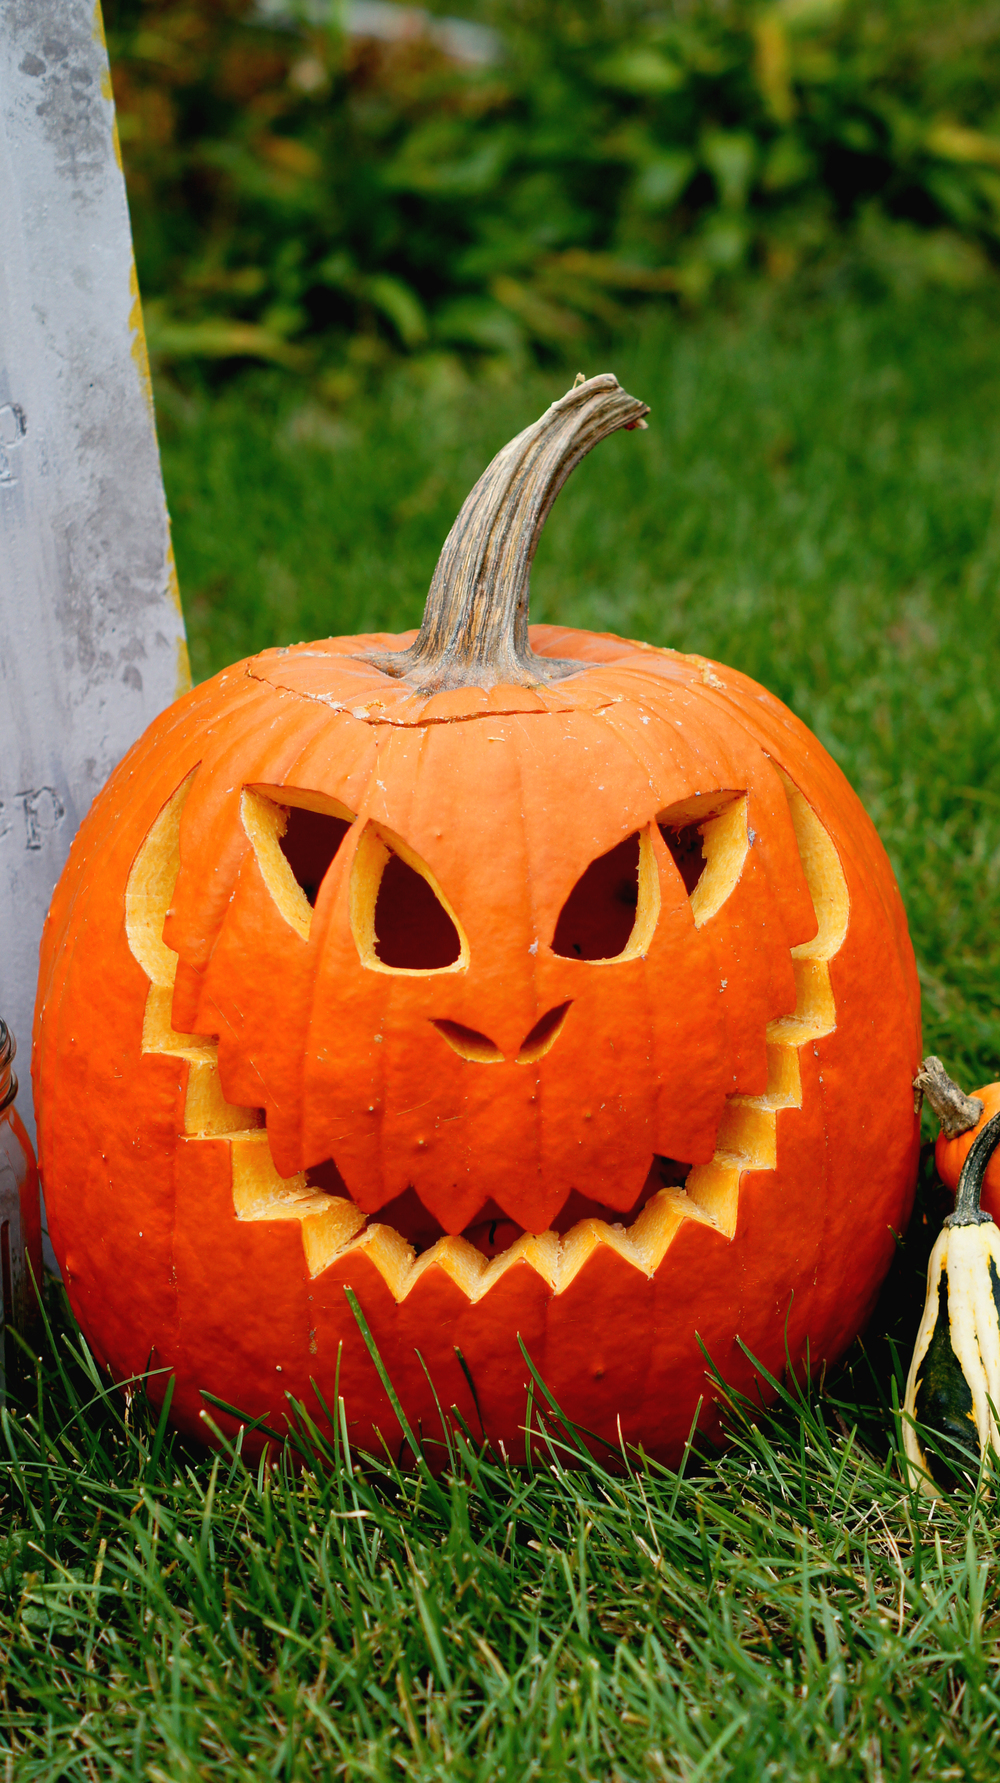 Carved Pumpkin 11.jpg